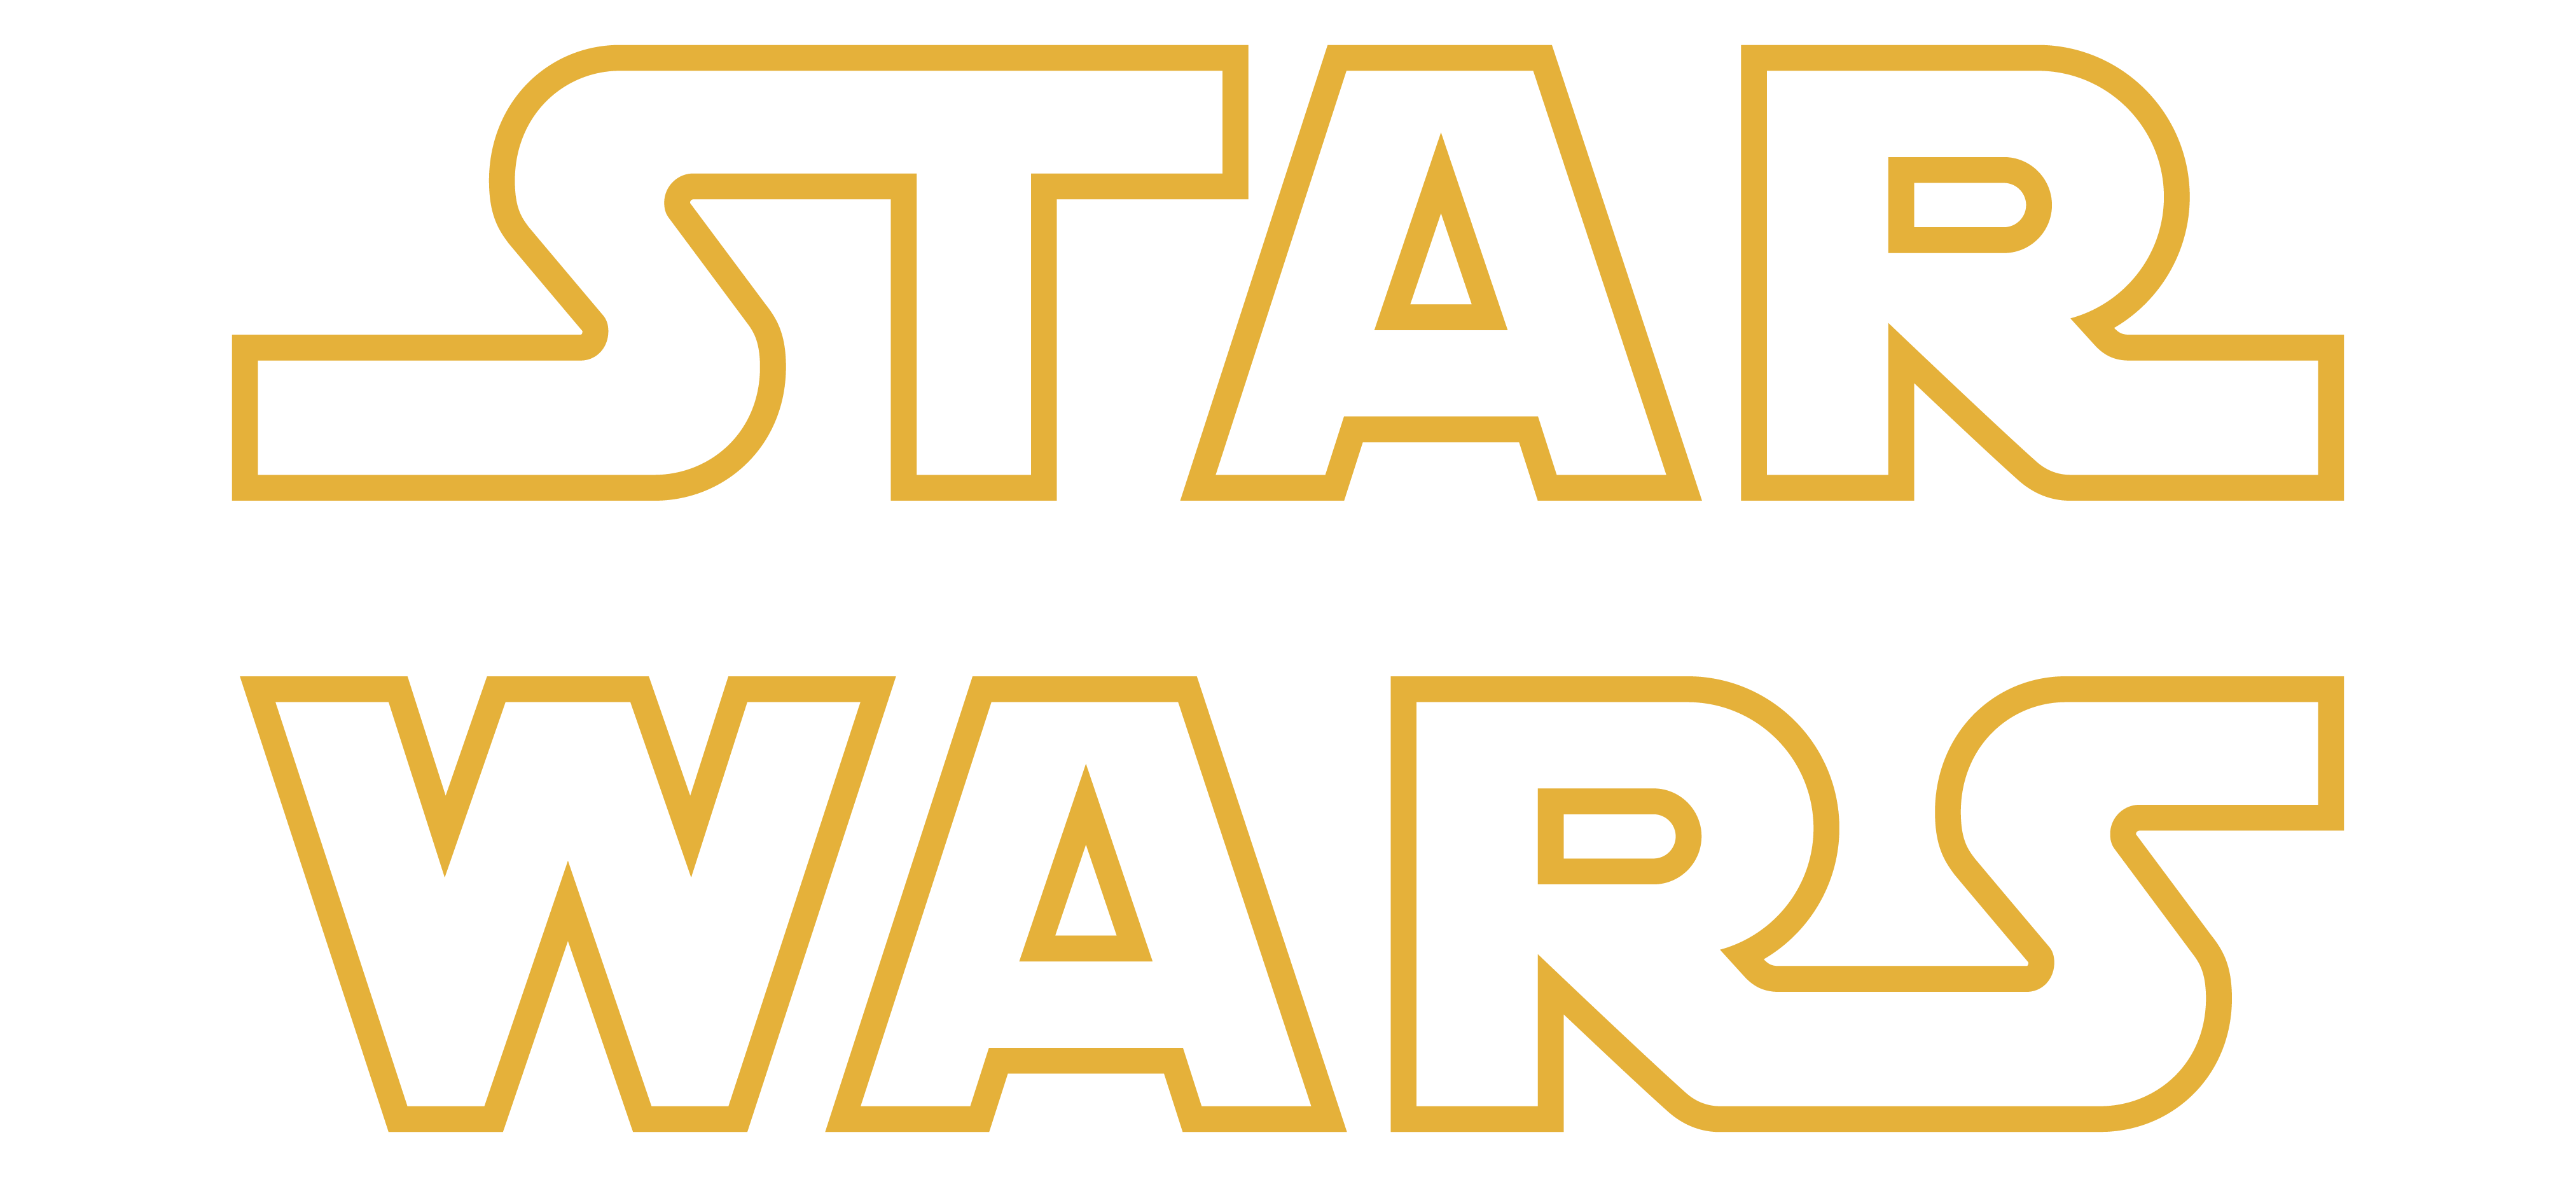 Star wars the force awakens png. Image transparent logo disney